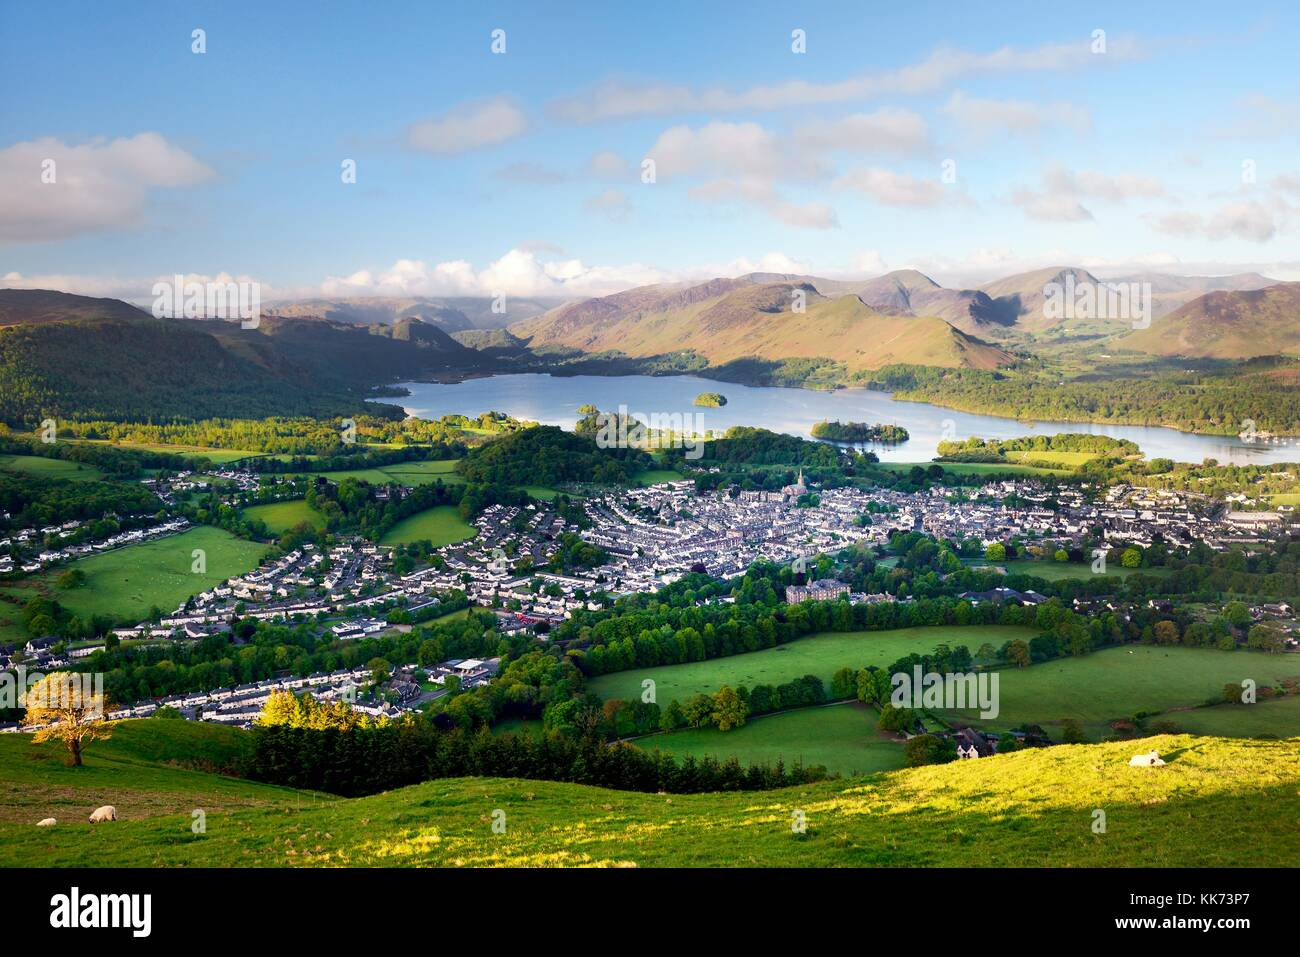 Lake District National Park, Cumbria, England. South over Keswick town and Derwentwater to Borrowdale. Summer morning - Stock Image